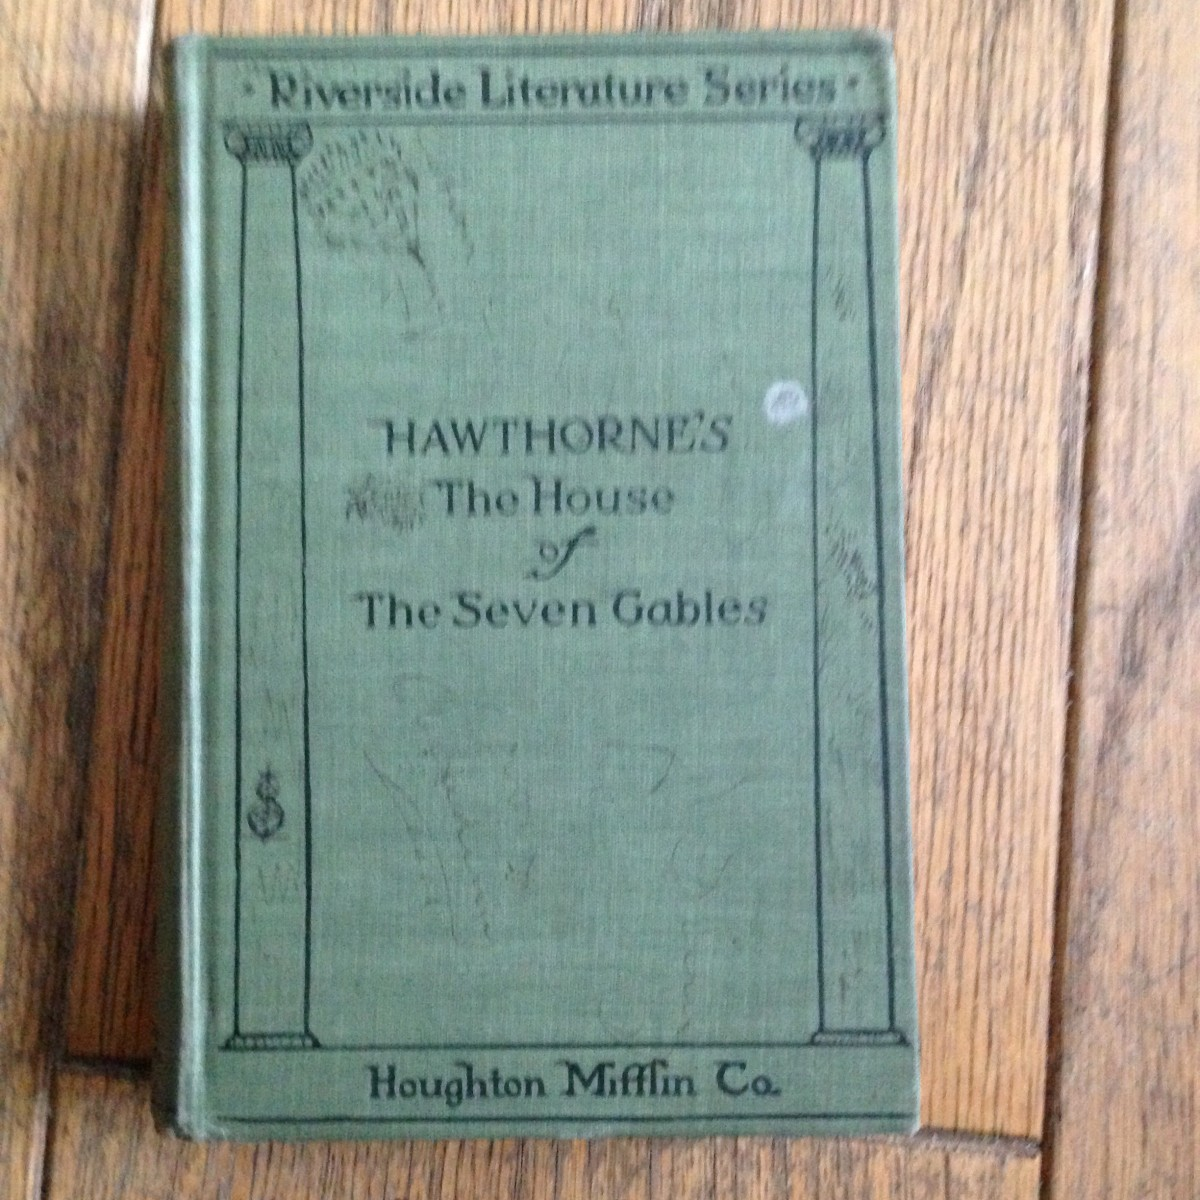 an analysis of trascendentalist views of humanity in the house of seven gables by nathaniel hawthorn